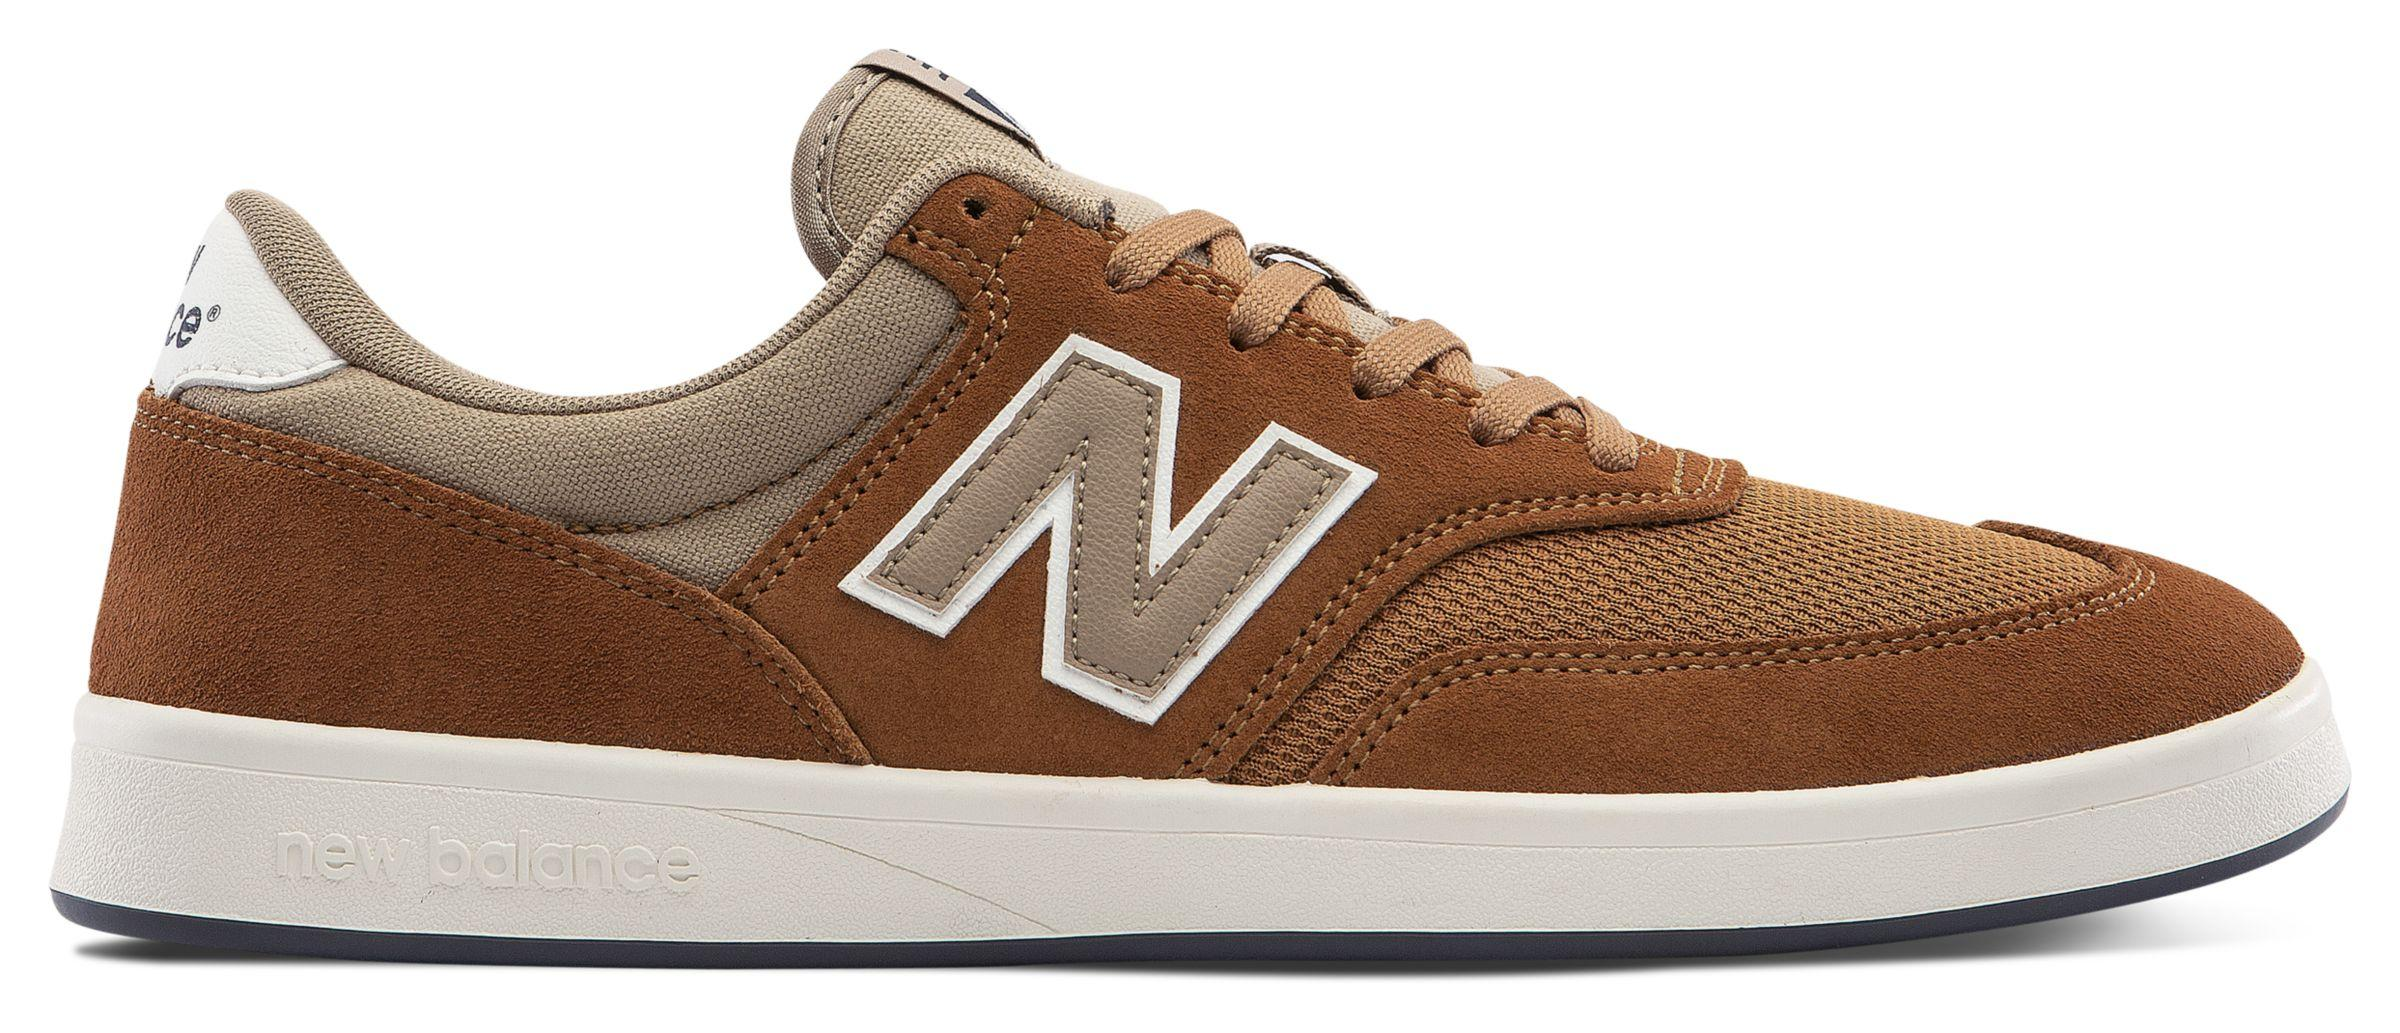 New Balance Suede All Coasts 617 in